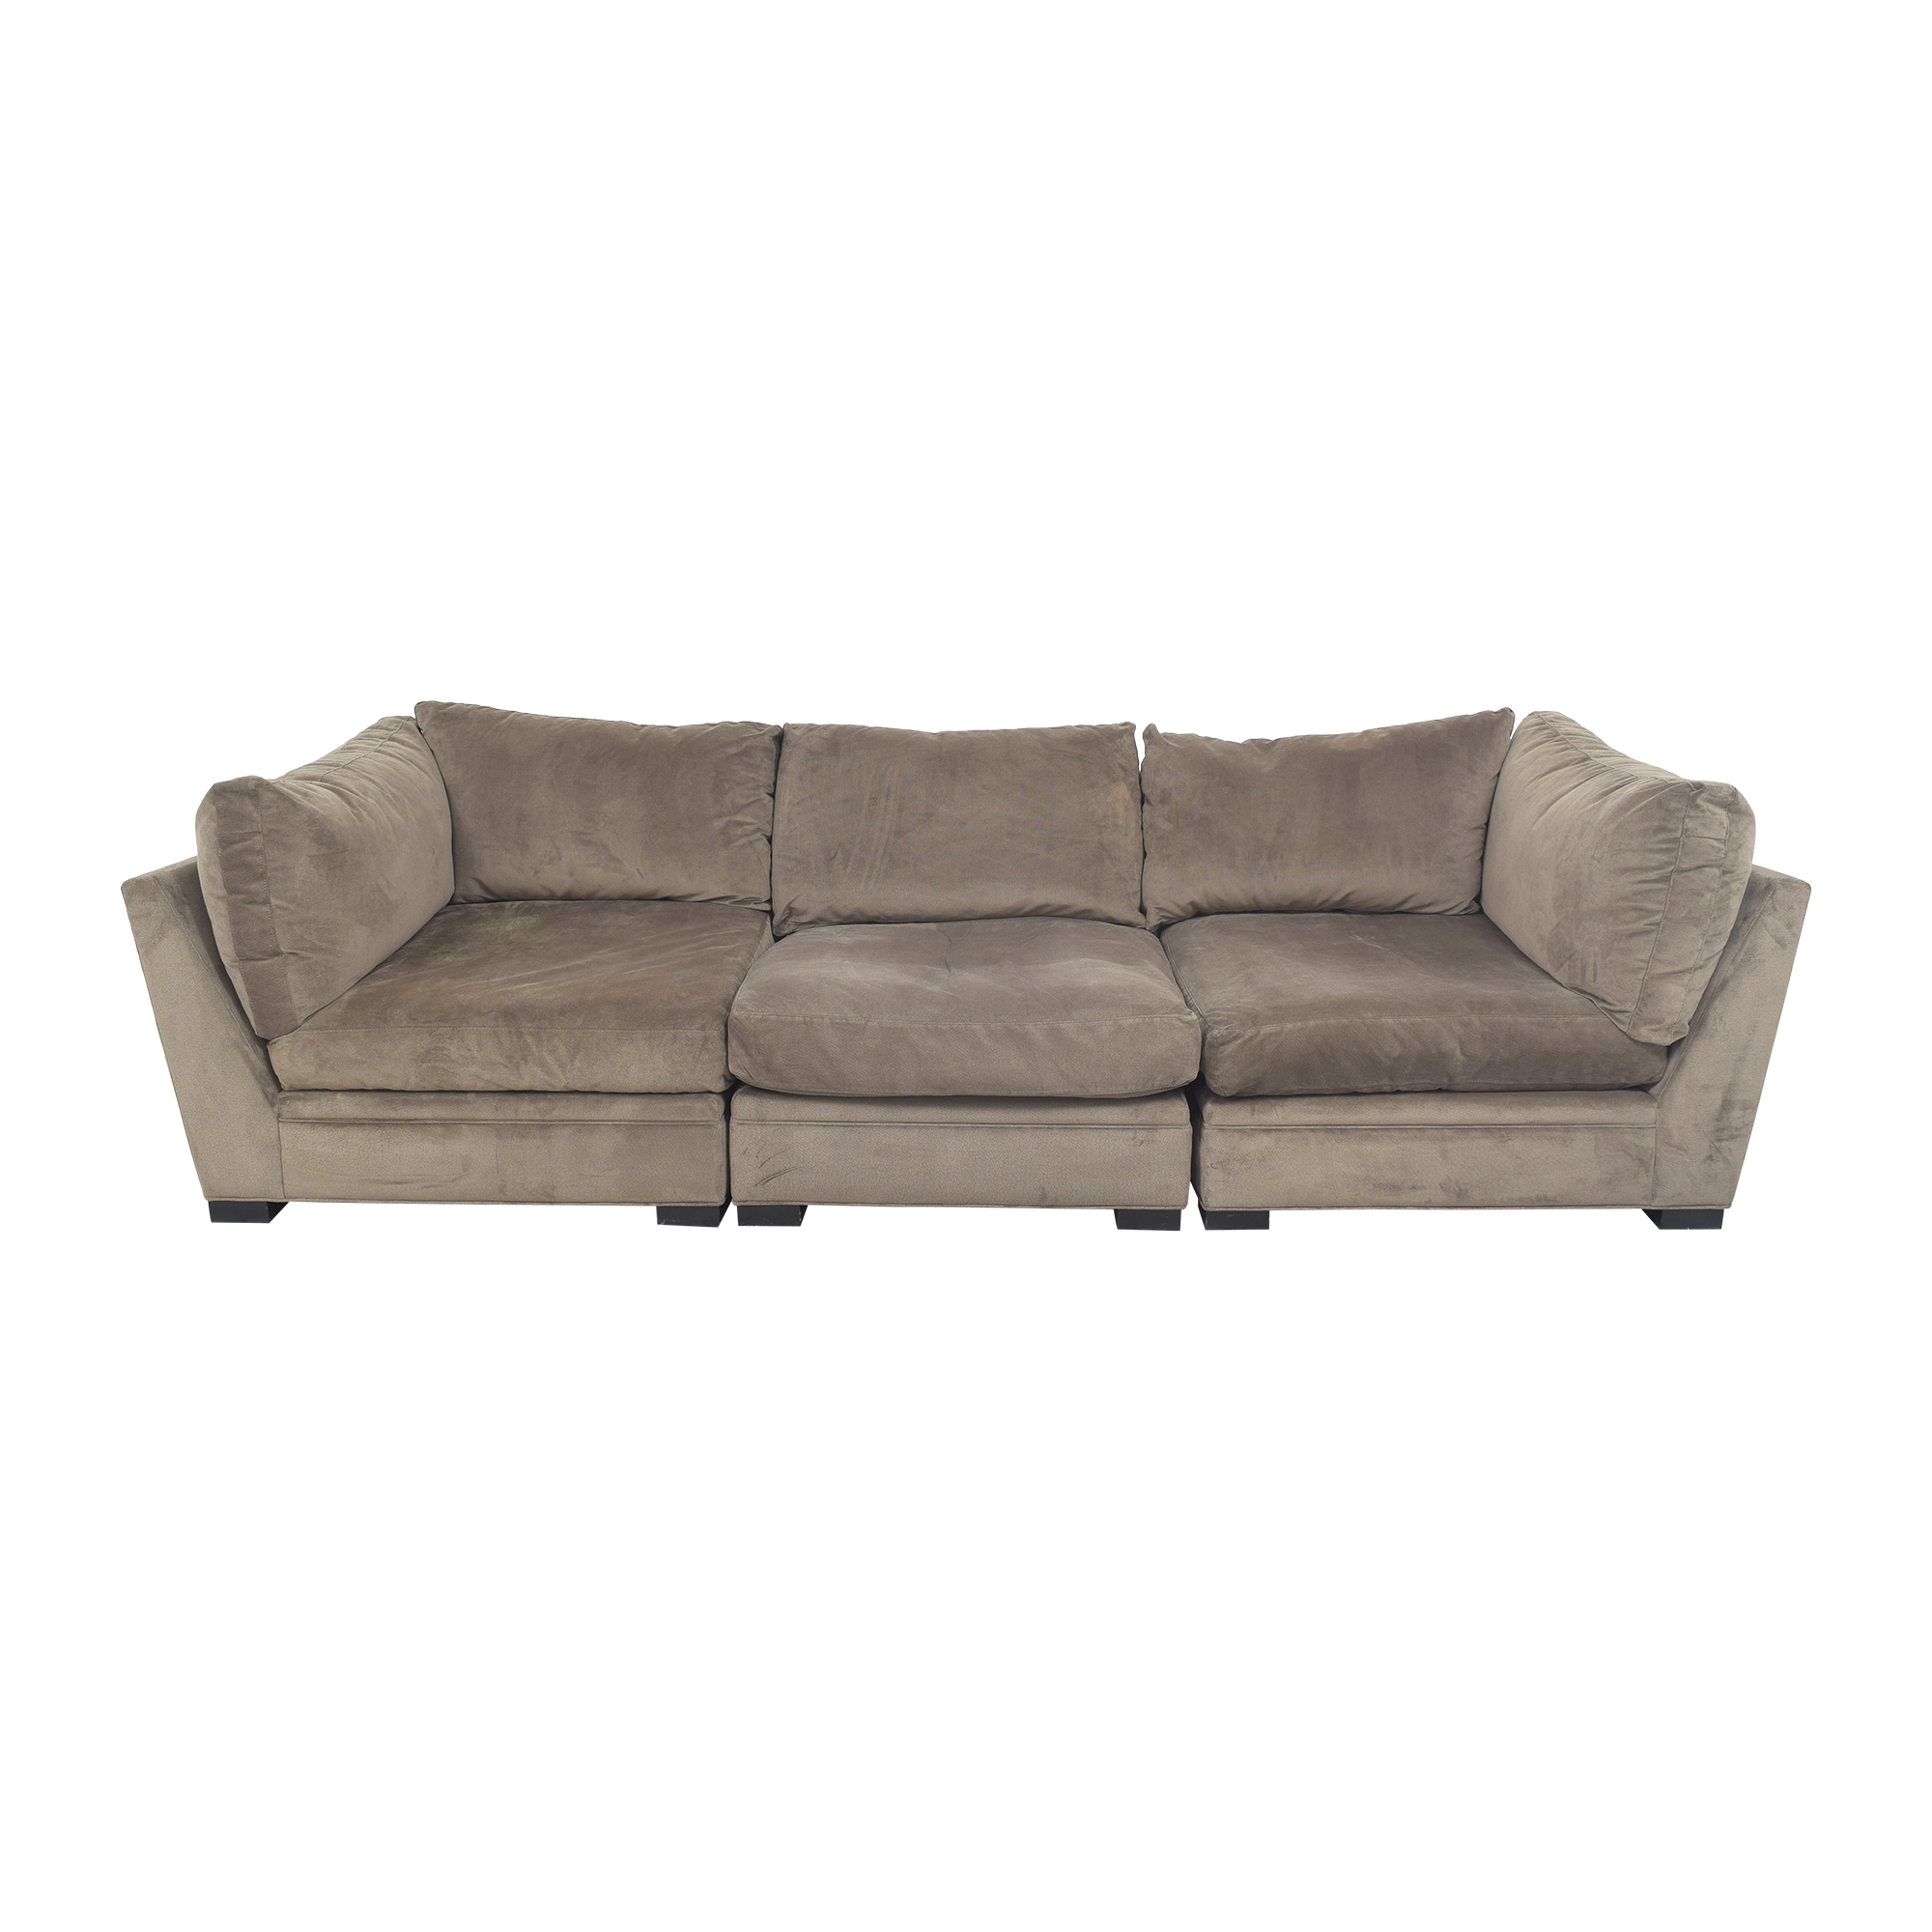 buy Raymour & Flanigan Sectional Sofa by Cindy Crawford Home Raymour & Flanigan Sectionals